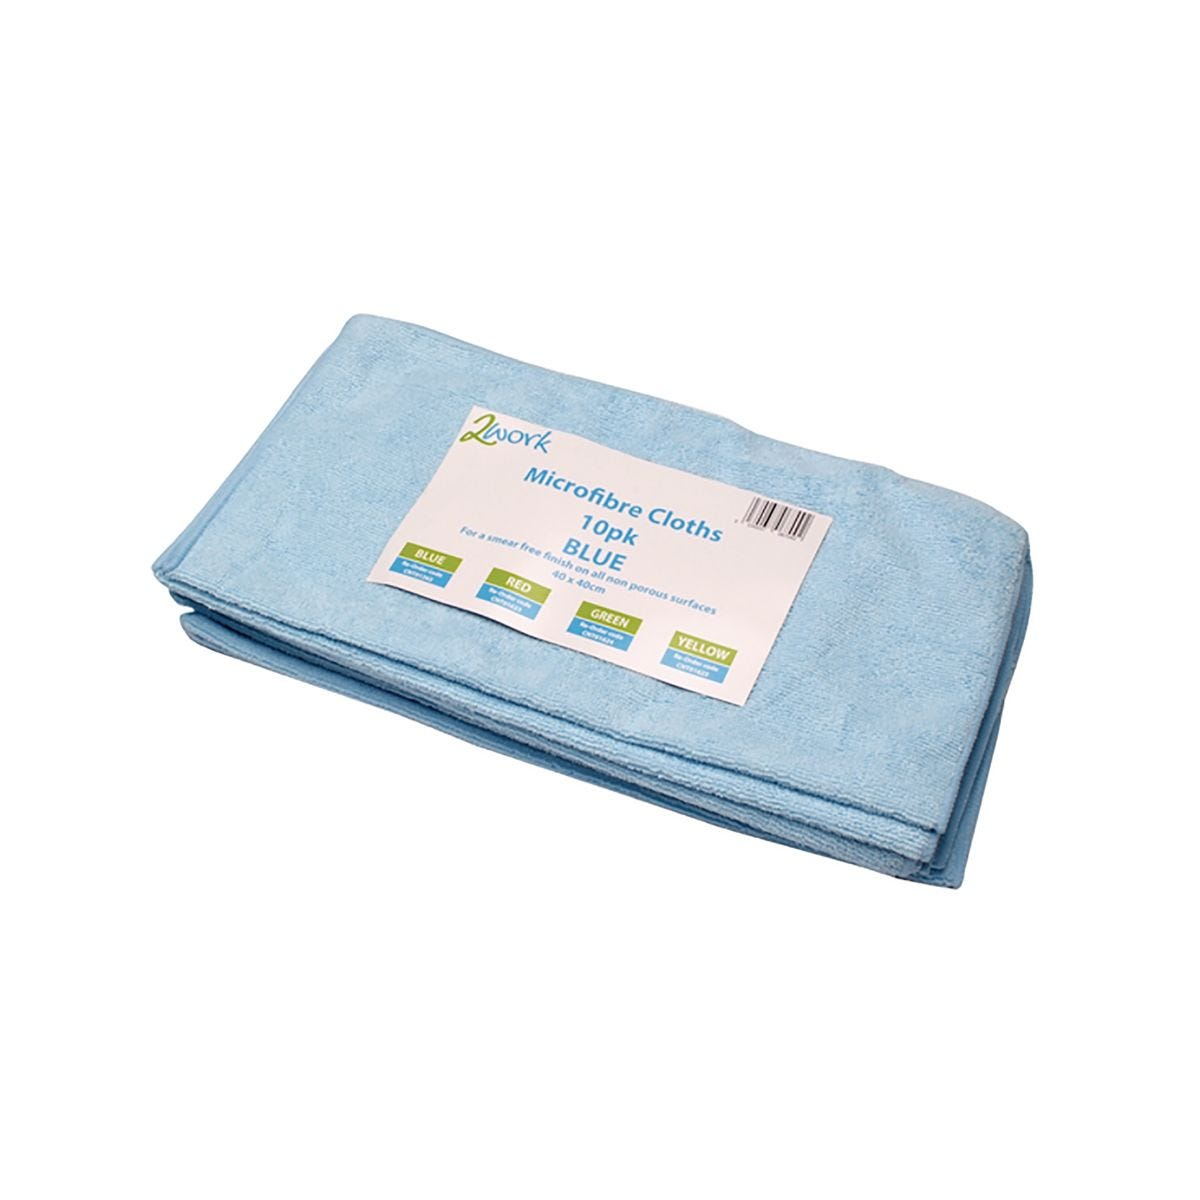 Image of 2Work Microfibre Cloth Blue 400 x 400mm Pack of 10